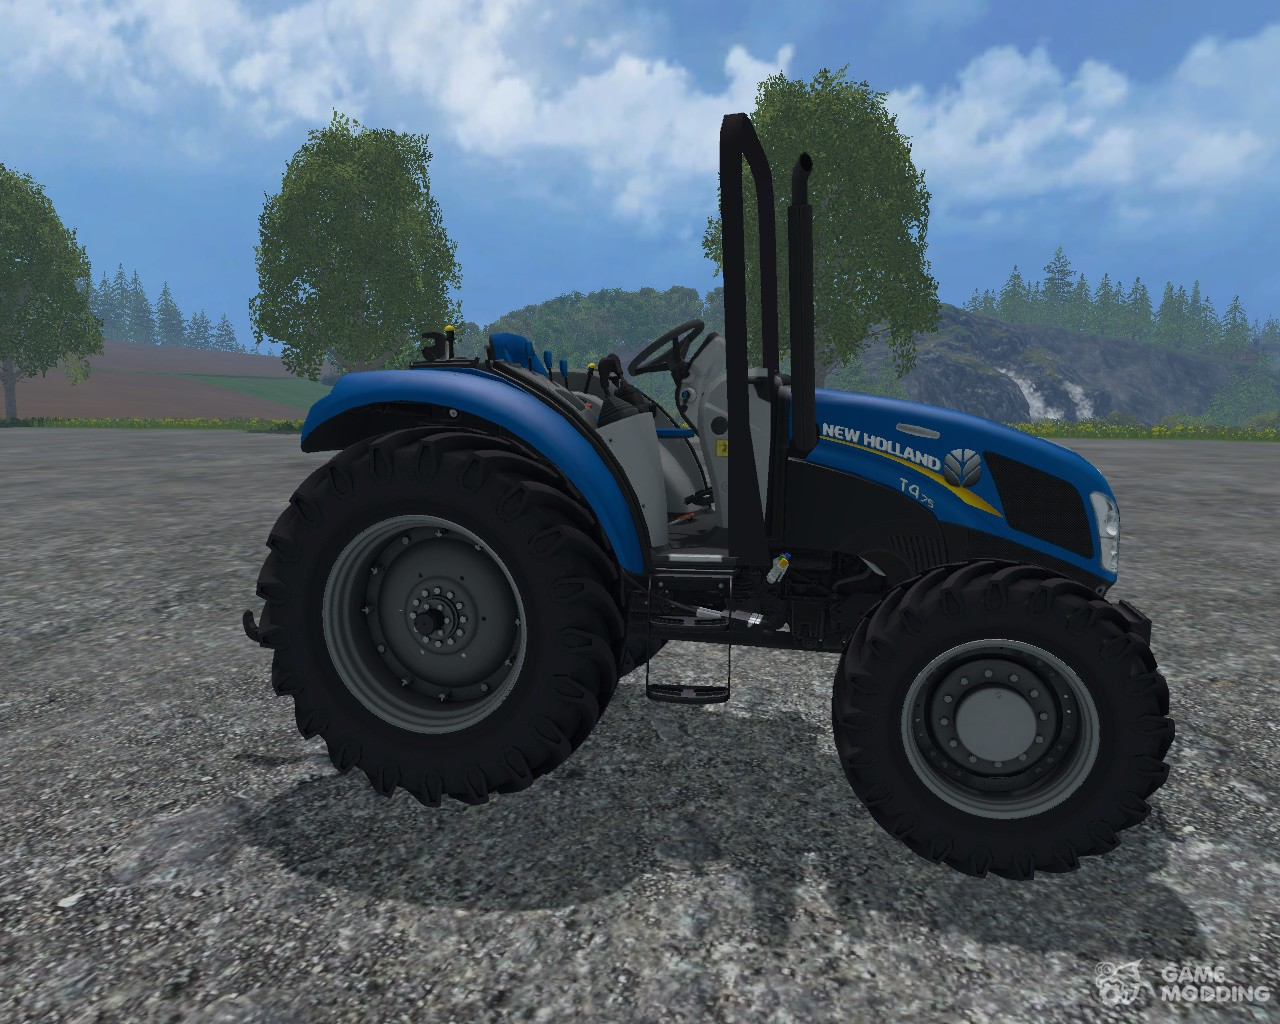 compact tractors scroll search for ashx image w sale thumbnailhandler equipment new somerset garden tractor area deck kentucky holland